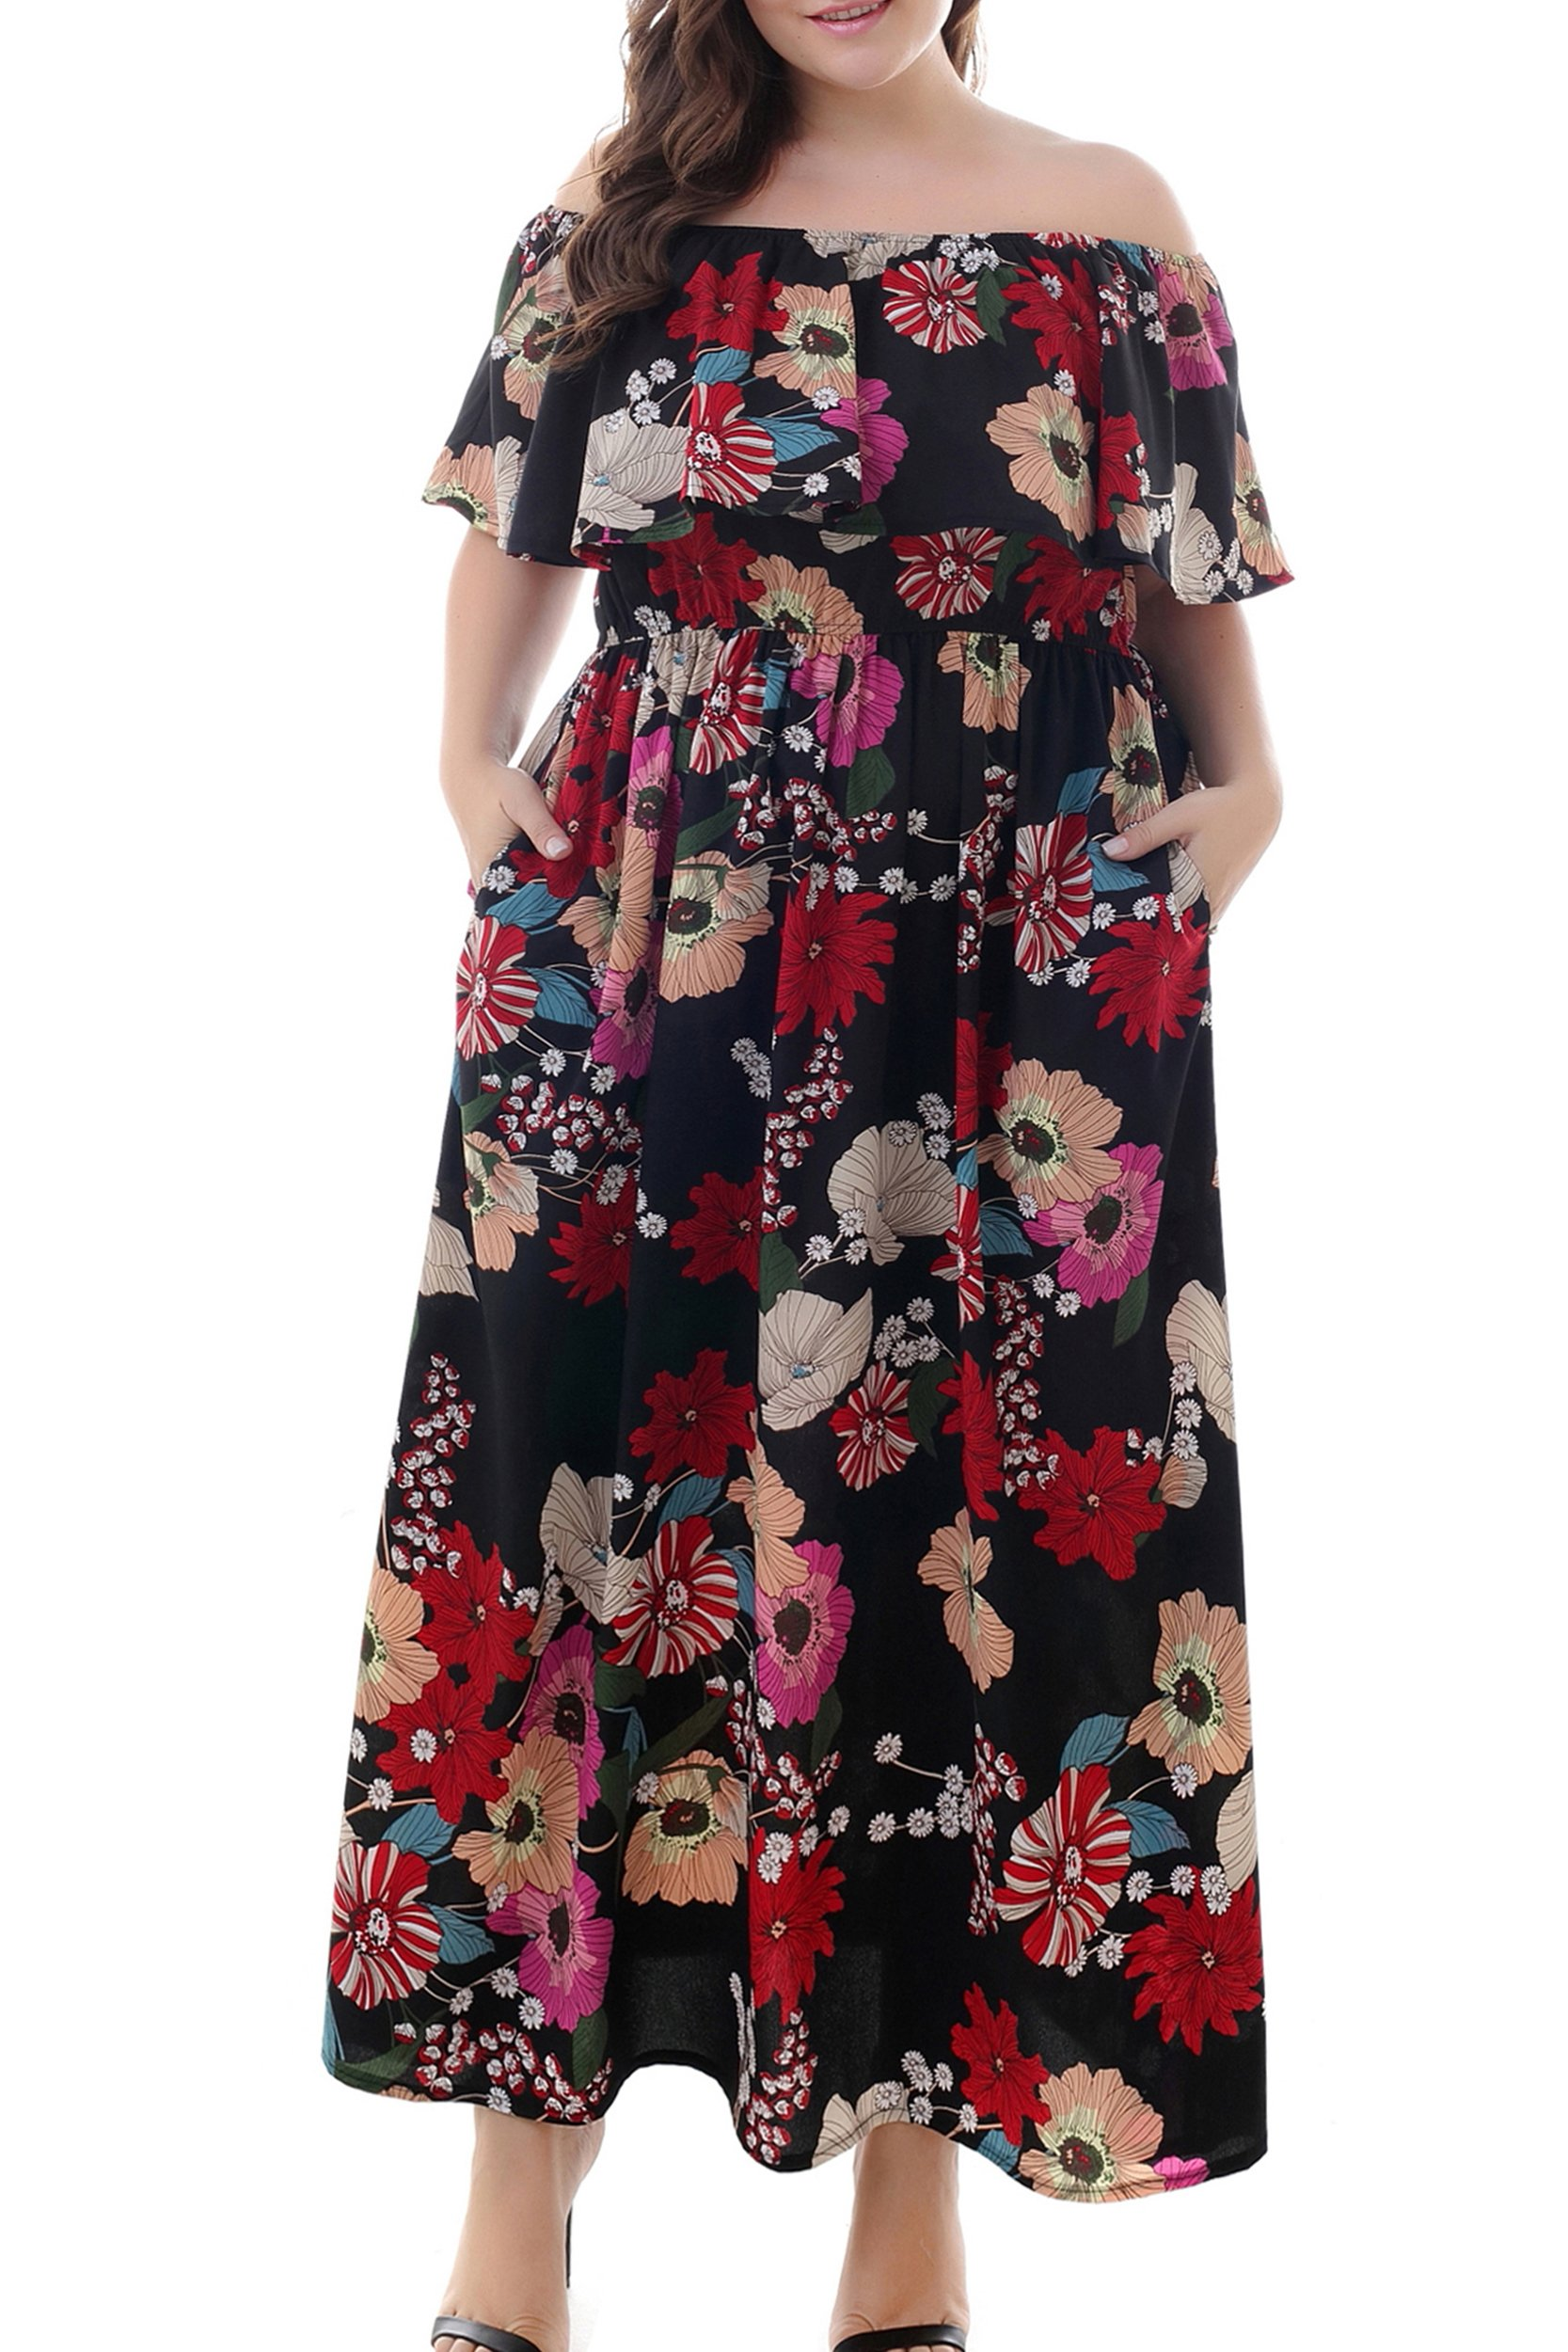 Nemidor Women's Floral Print Off Shoulder Summer Casual Plus Size Maxi Dress with Pocket (Red+Print, 24W)